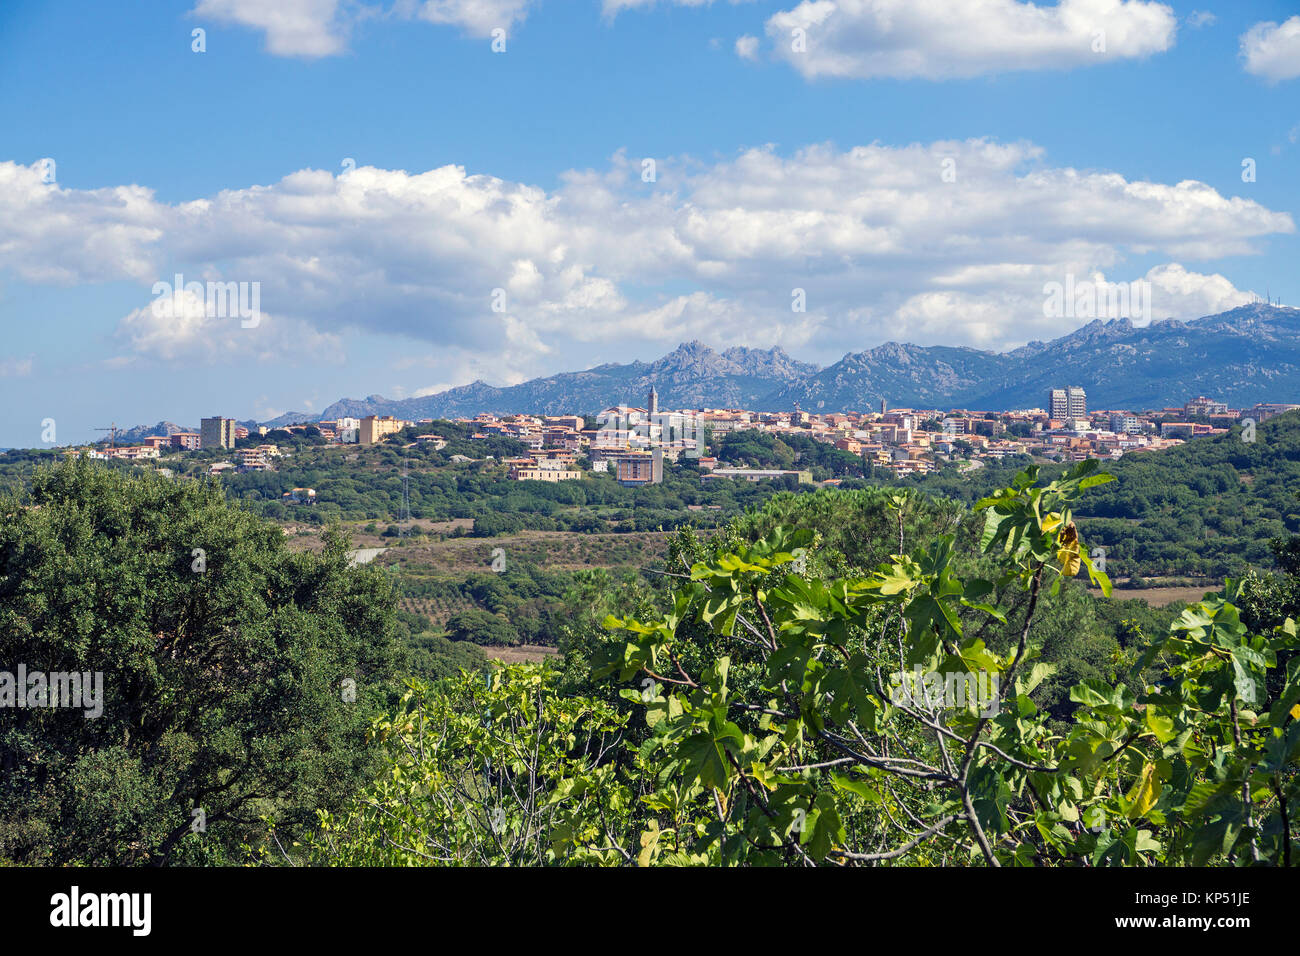 View on Tempio Pausania, town at Olbia-Tempio, Gallura, Sardinia, Italy, Mediterranean sea, Europe - Stock Image